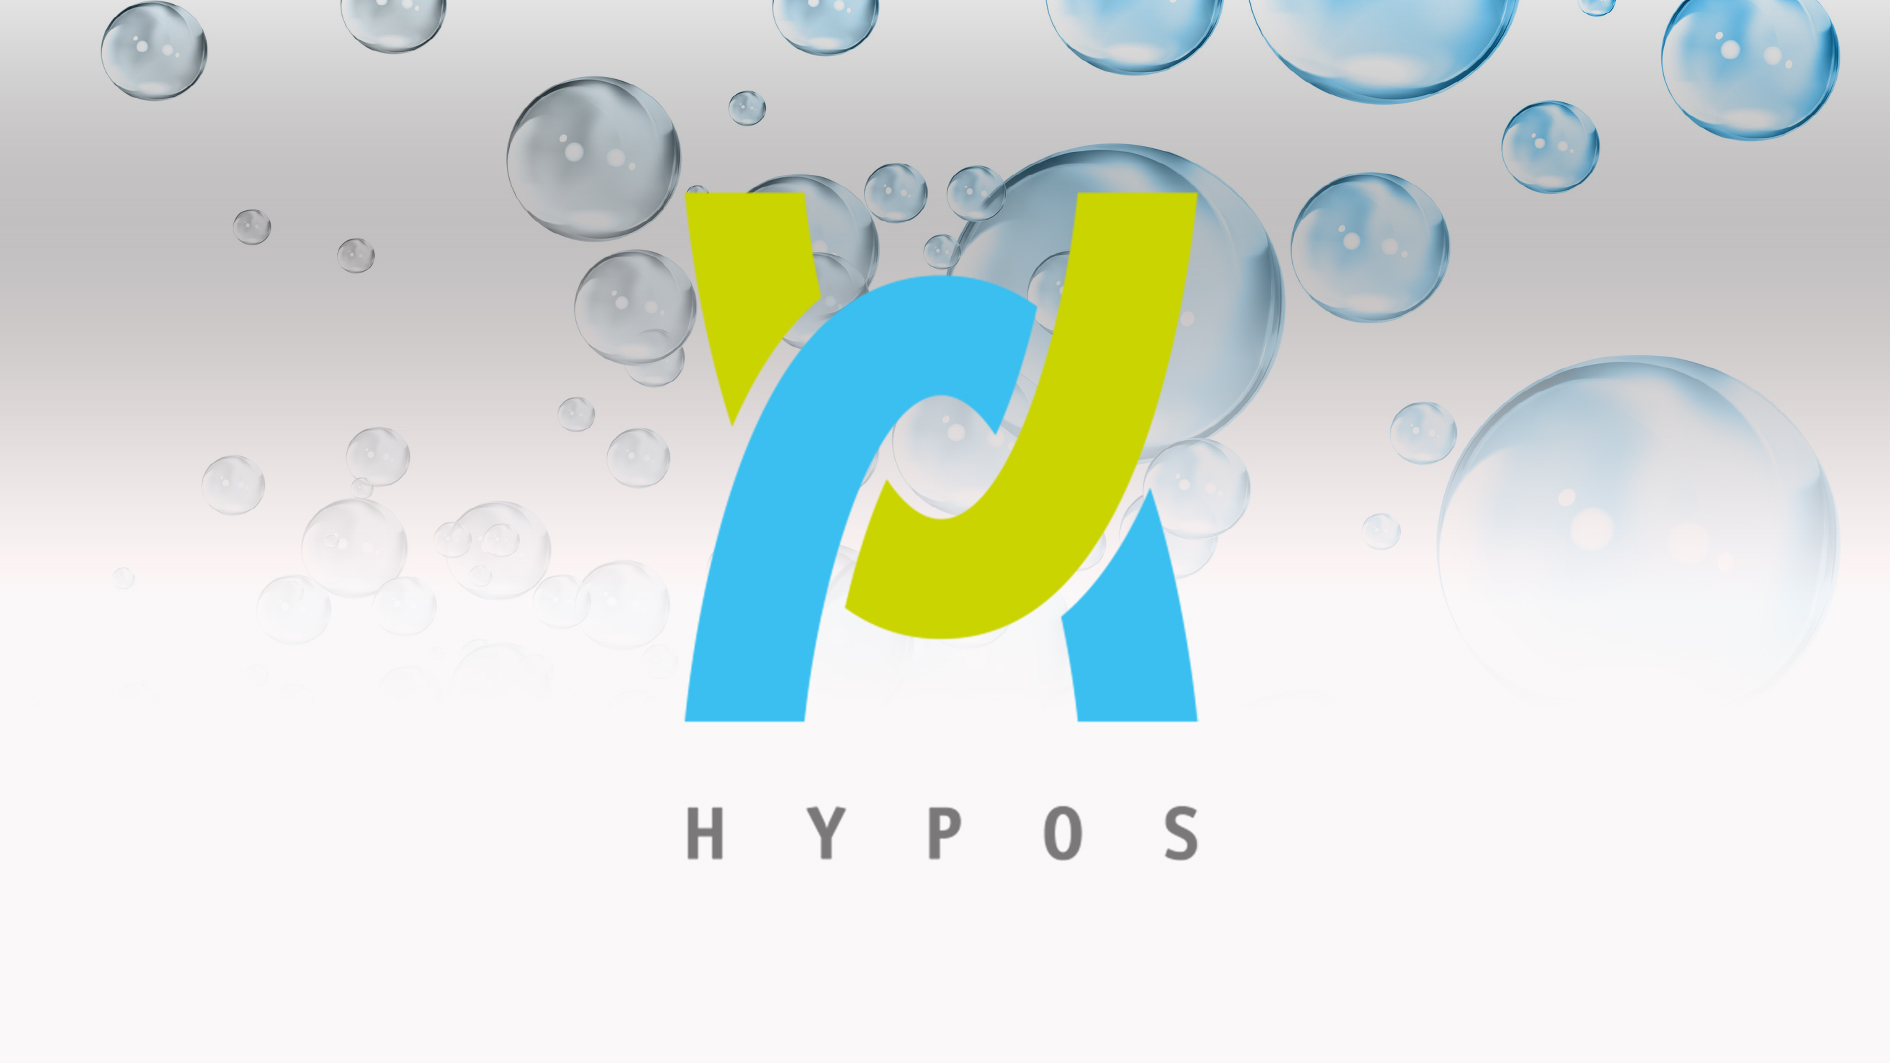 Logo of Hypos on a white background